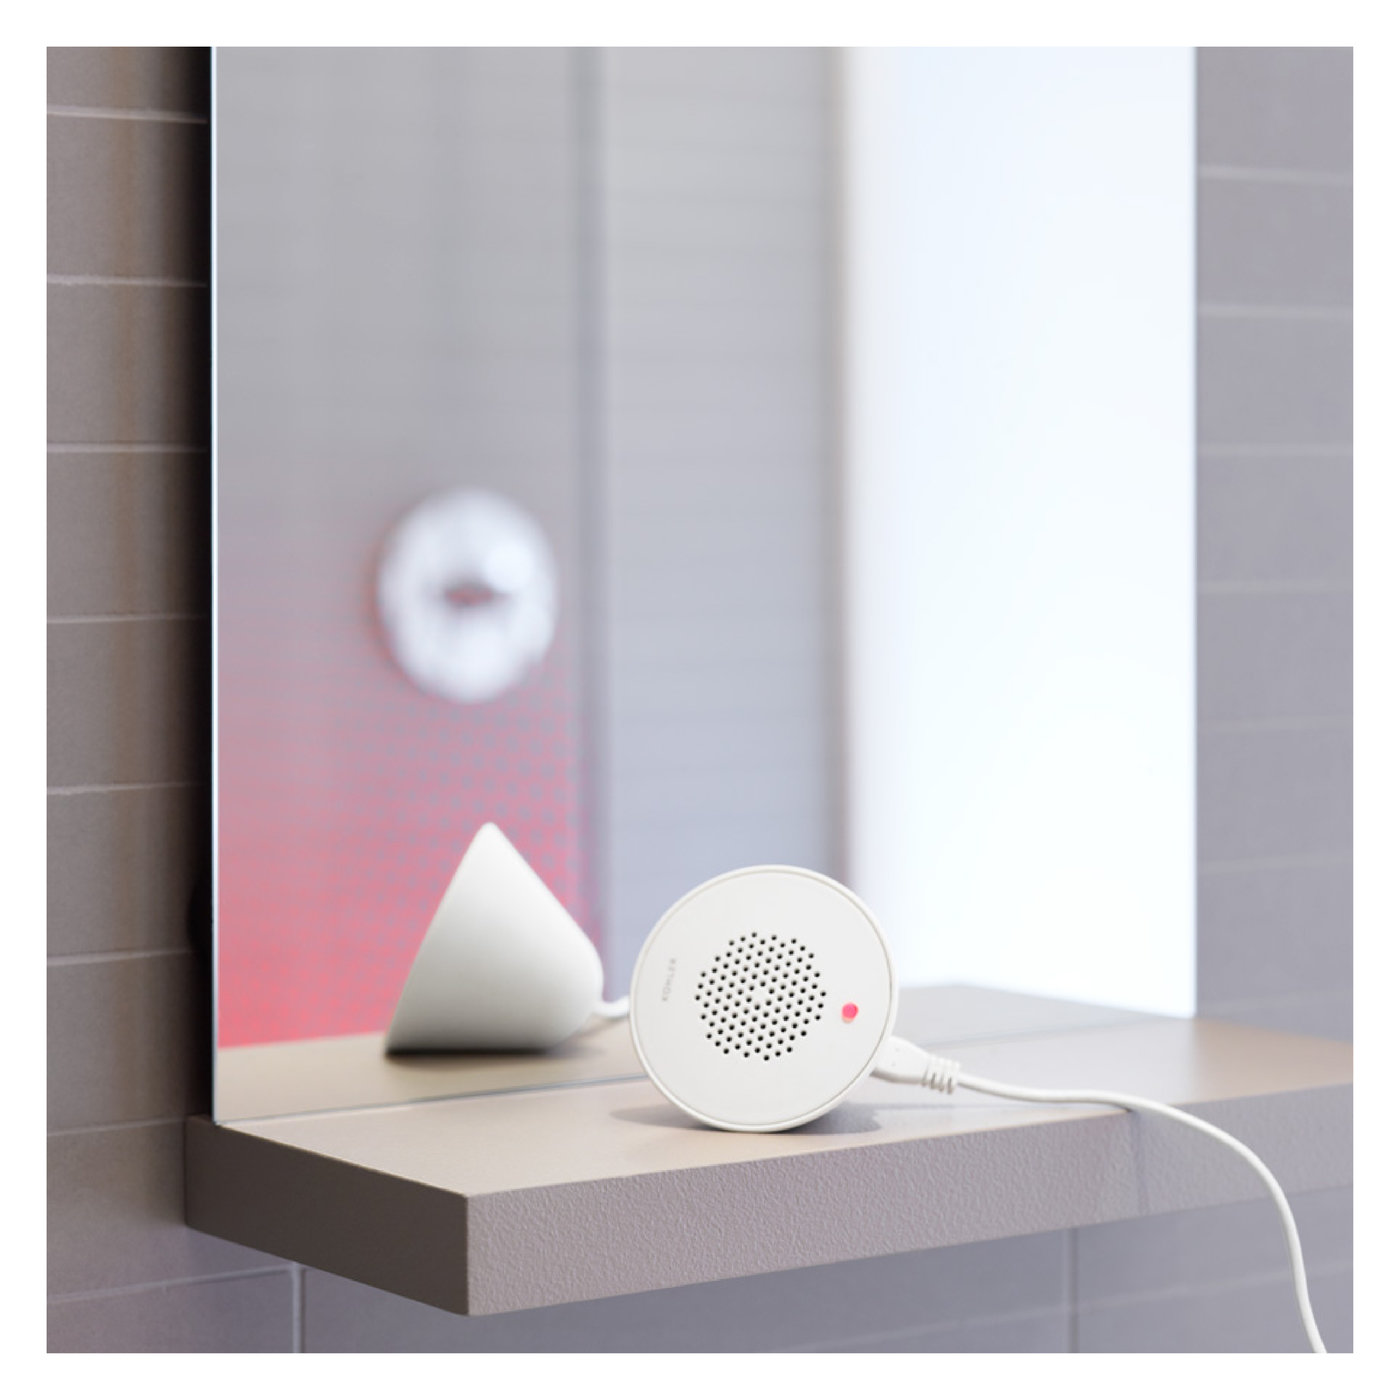 Kohler Moxie Showerhead With Integrated Bluetooth Speaker